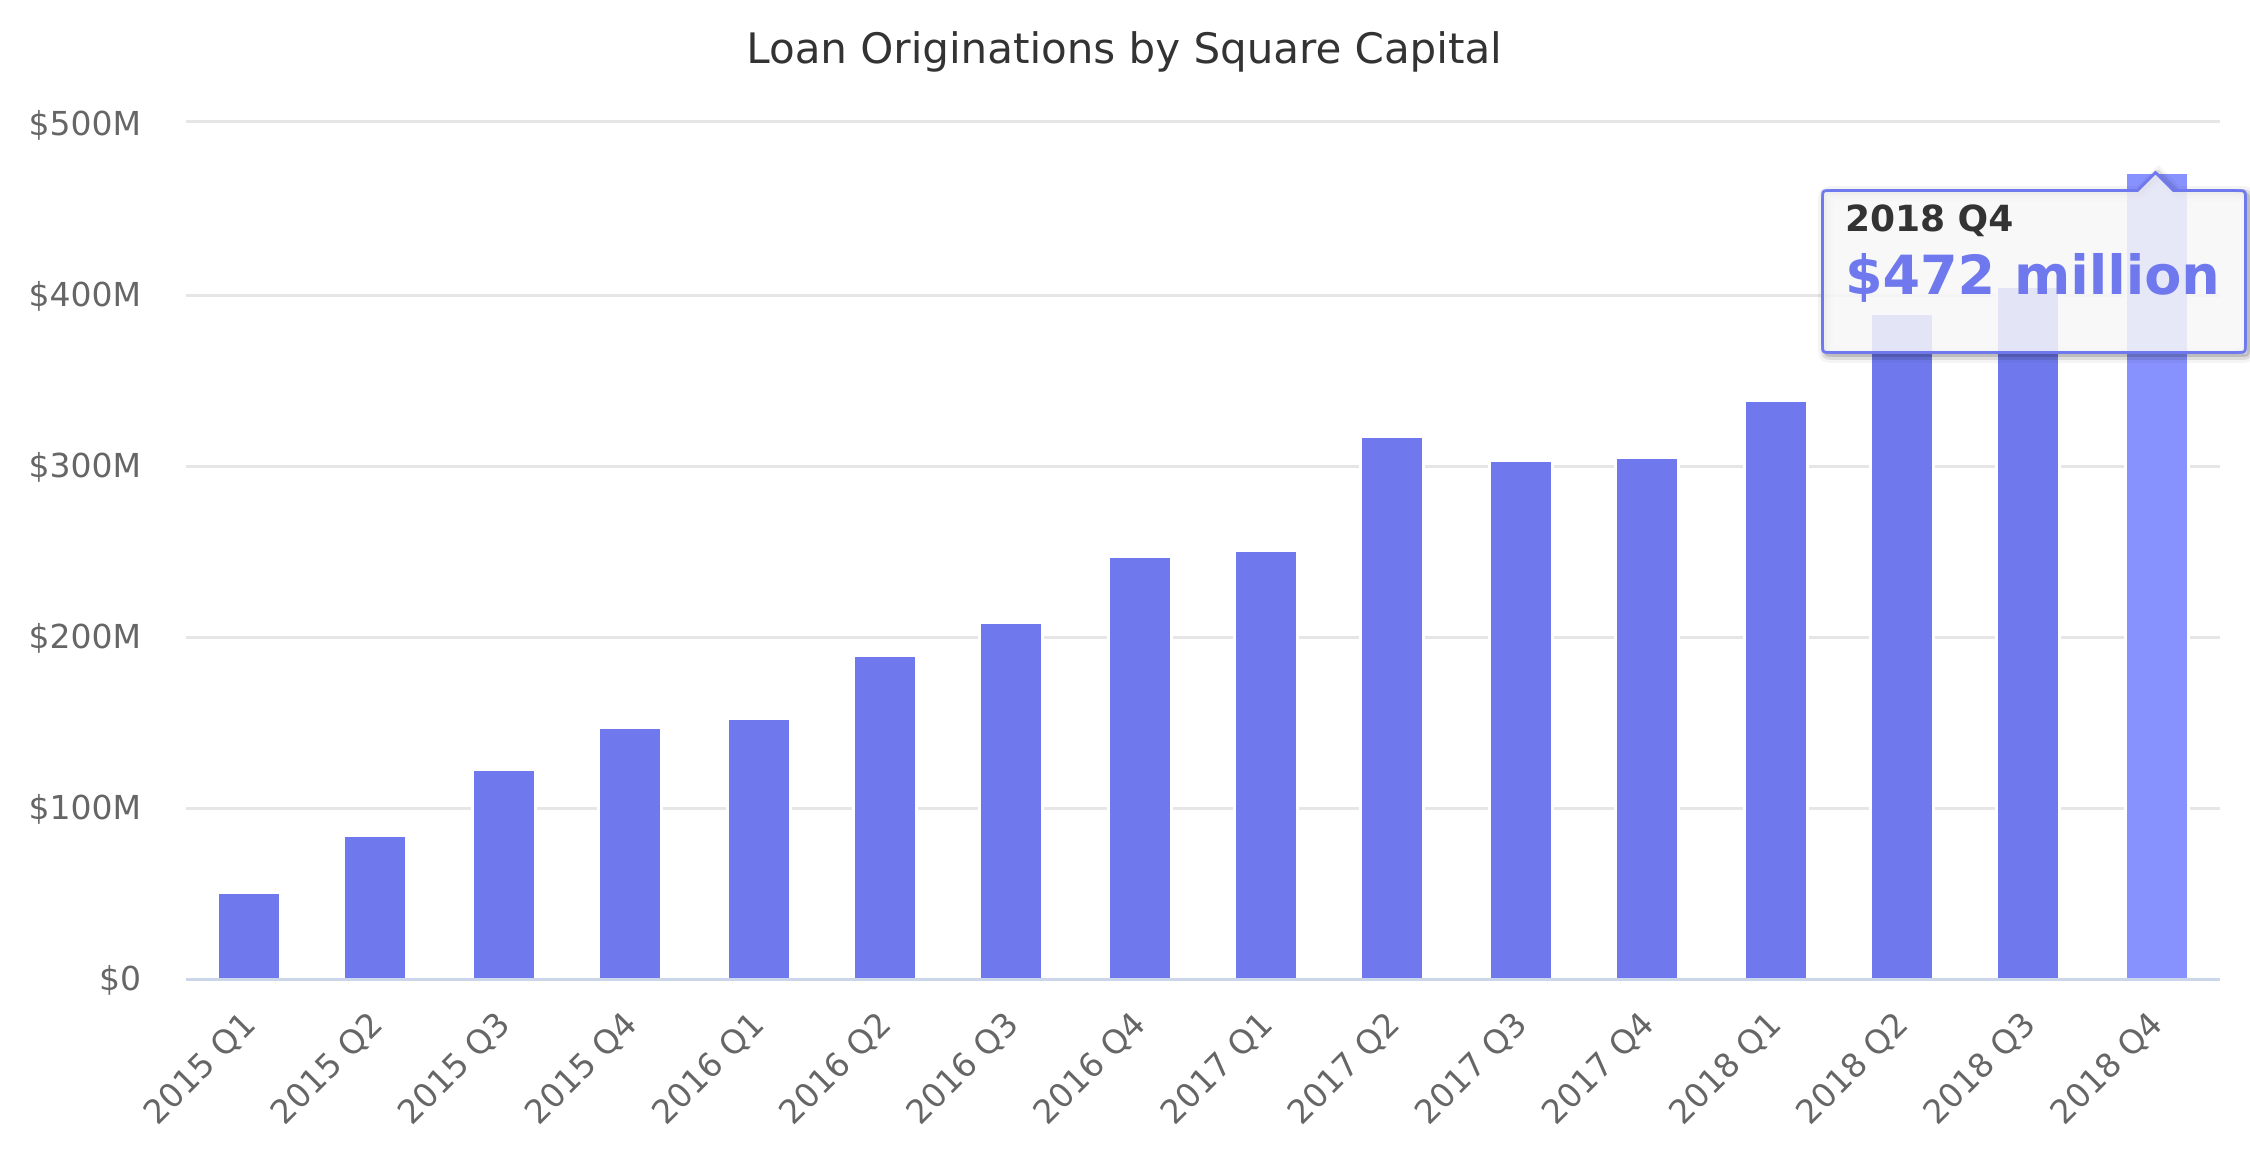 Loan Originations by Square Capital 2015-2018